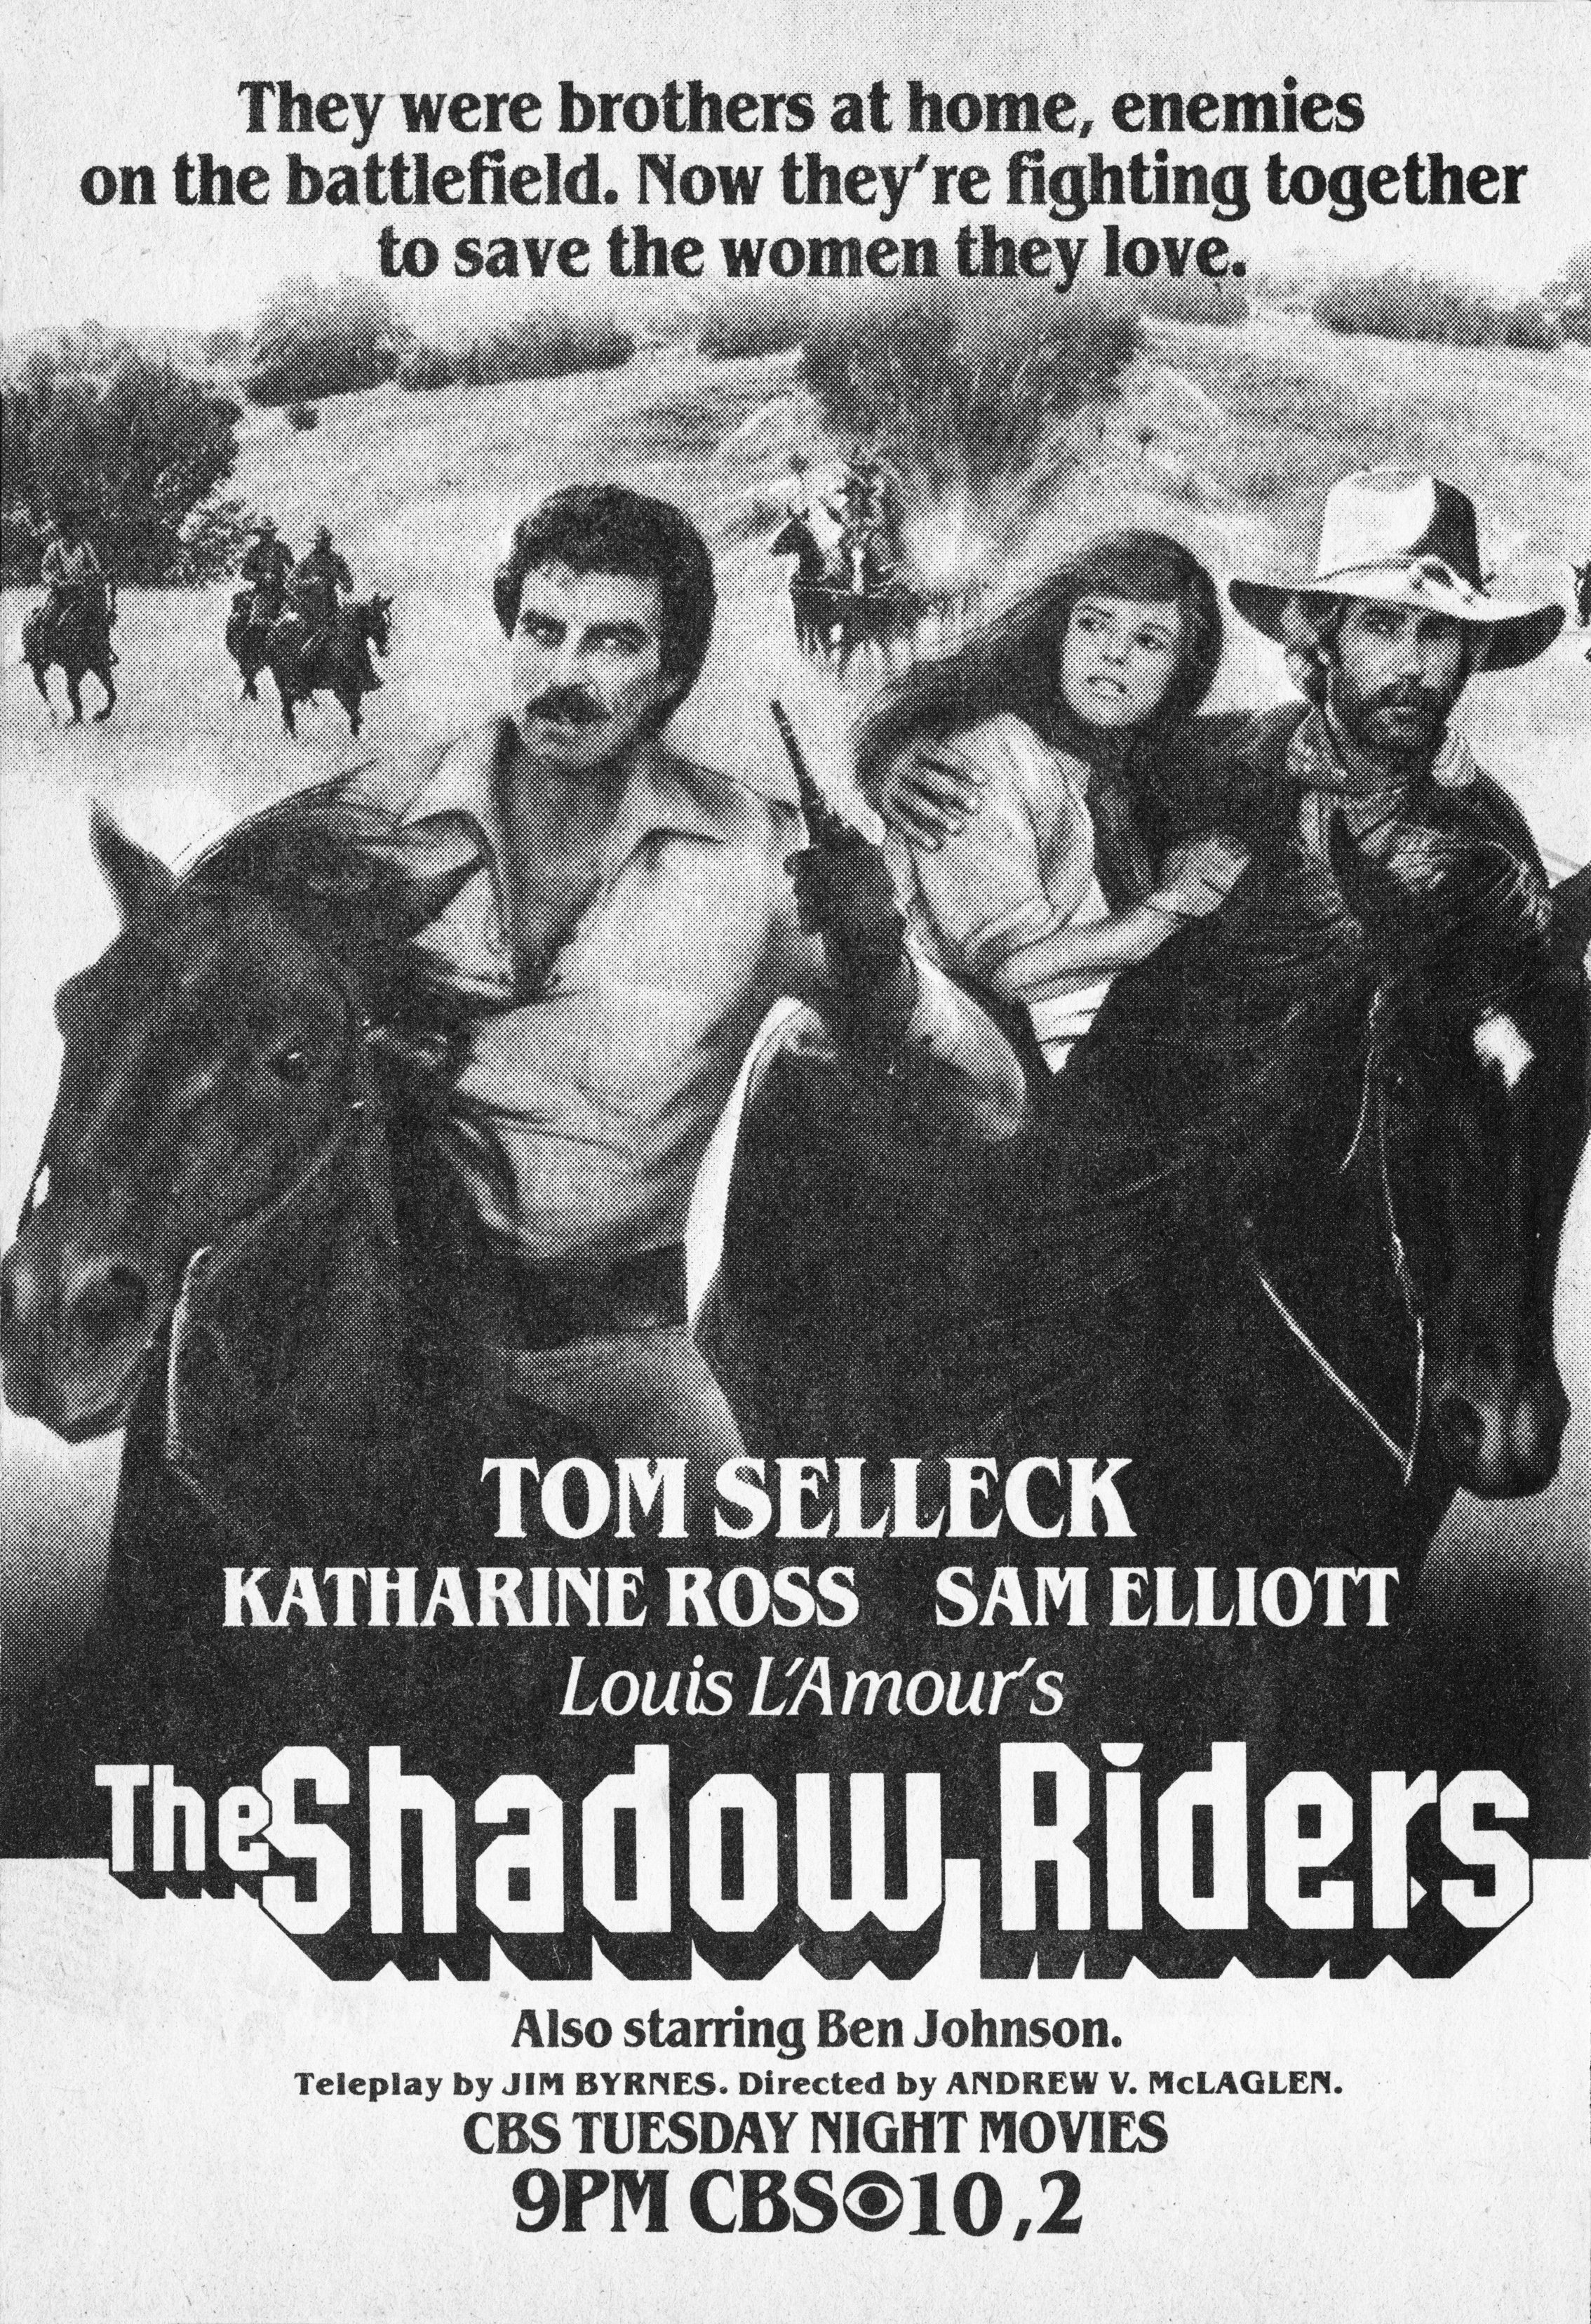 Image Credits: Getty Images | 'The Shadow Riders' film poster